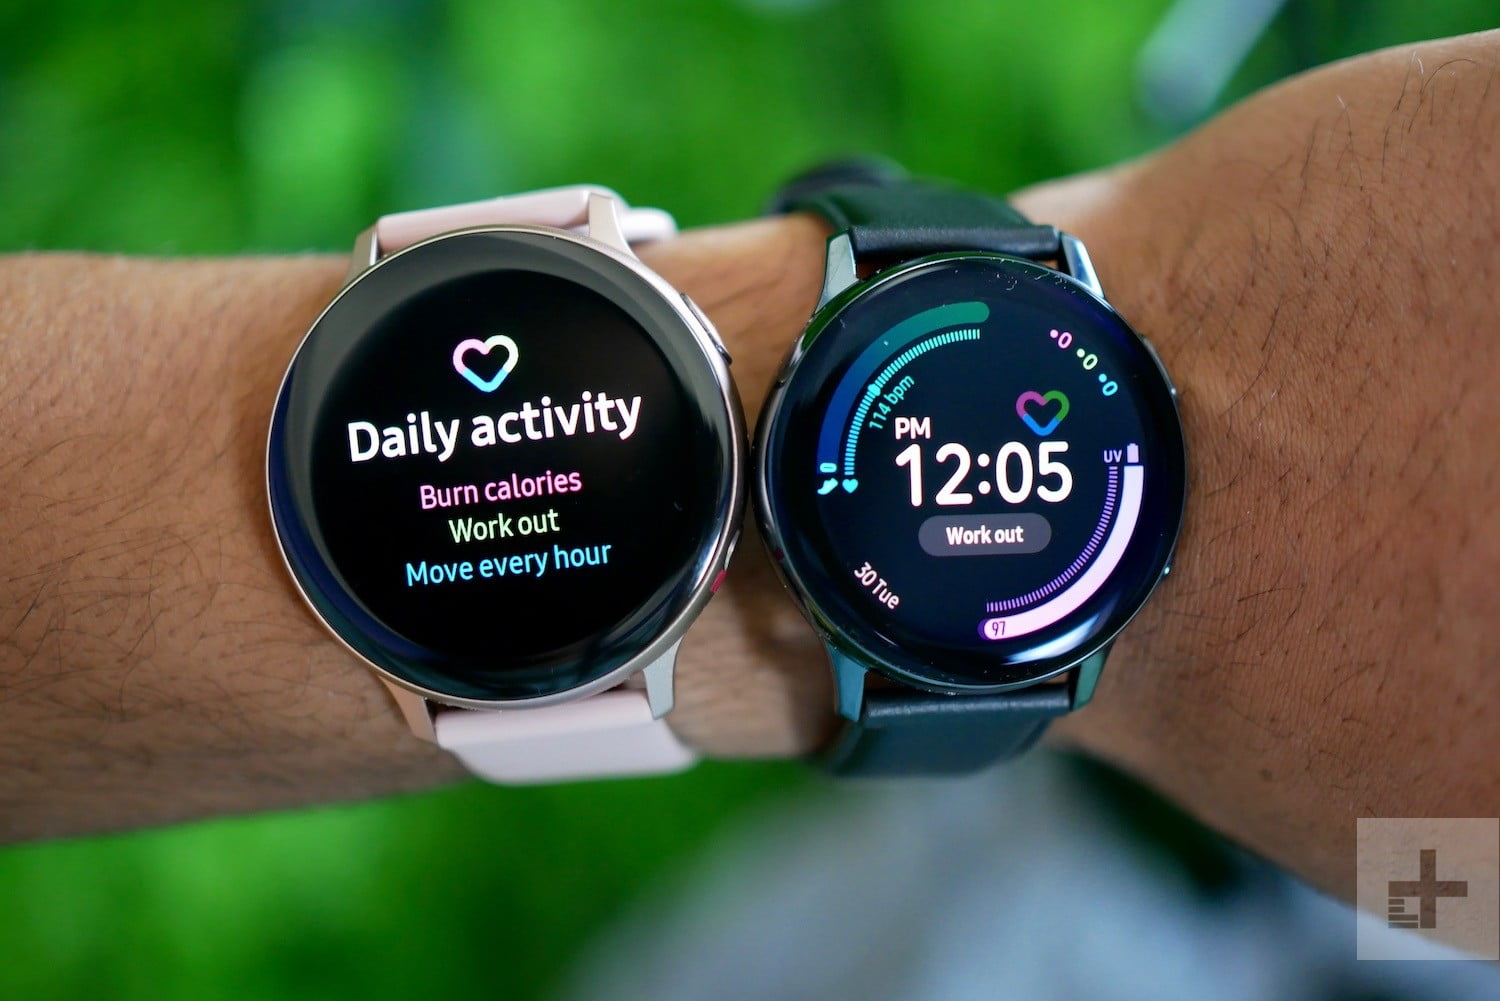 Samsung Galaxy Watch Active 2: Everything you need to know